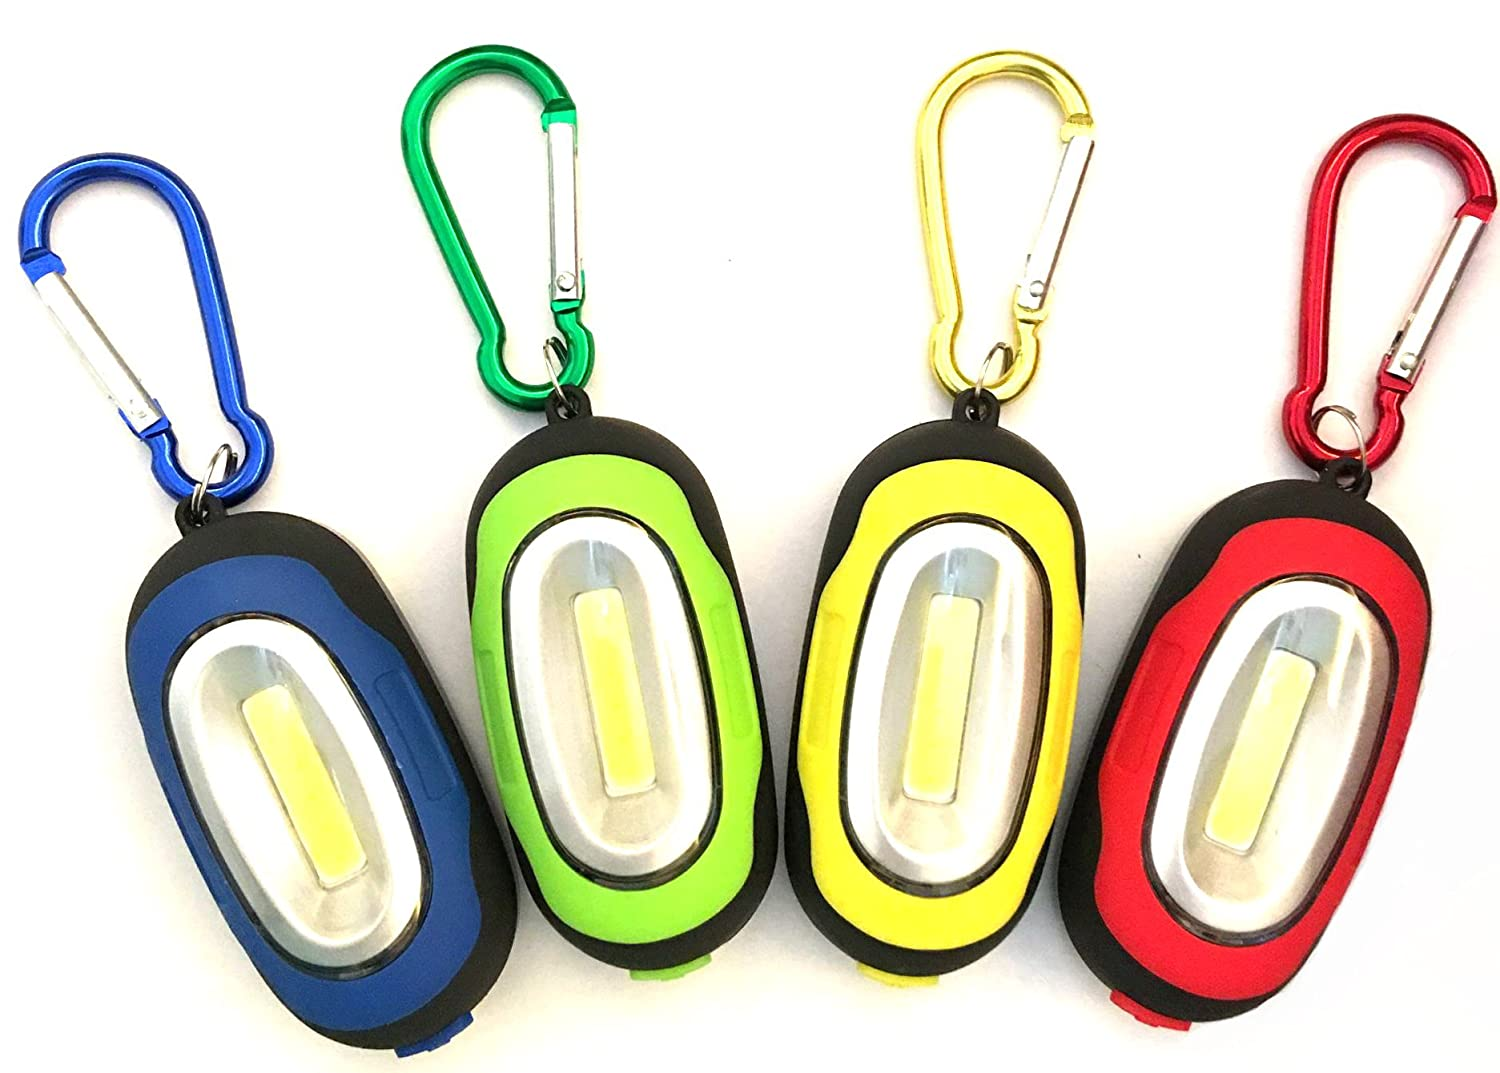 【4 Pack】Elecrainbow Magnetic Pocket Key Chain Flashlight/ COB Super Brightness with Carabiner, Assorted Colors